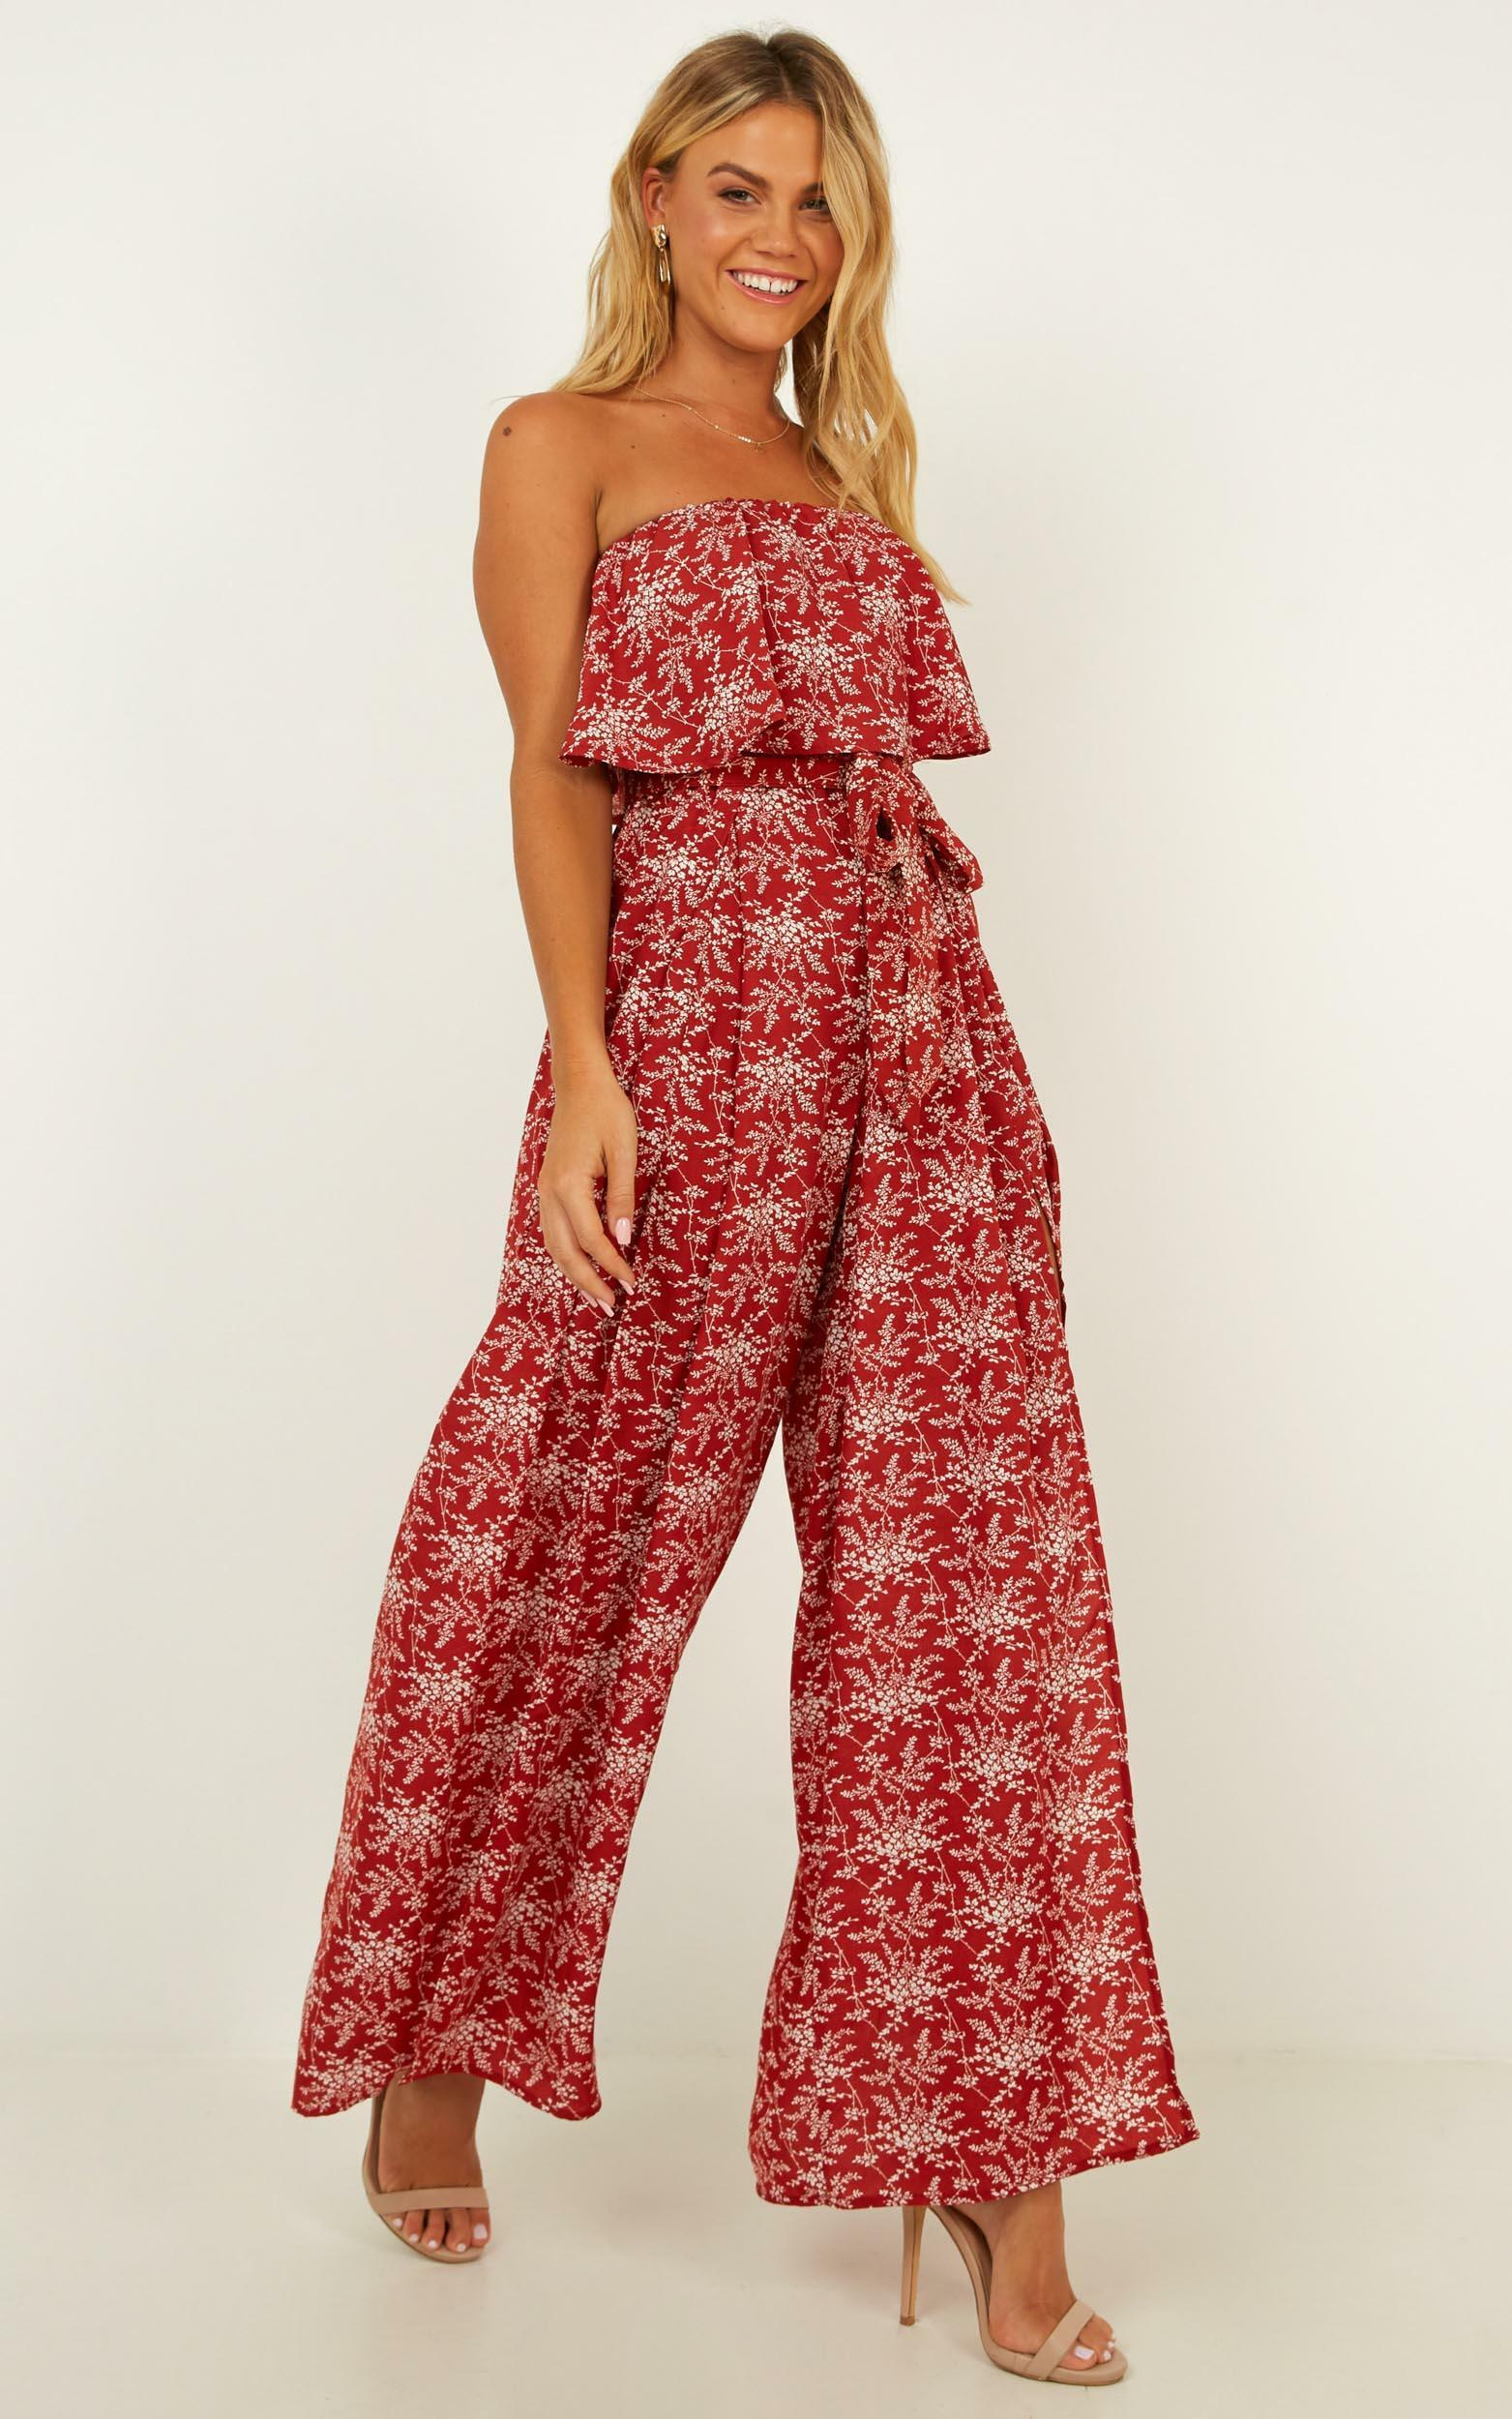 A Star is Born Jumpsuit In Rust Floral - 4 (XXS), Rust, hi-res image number null